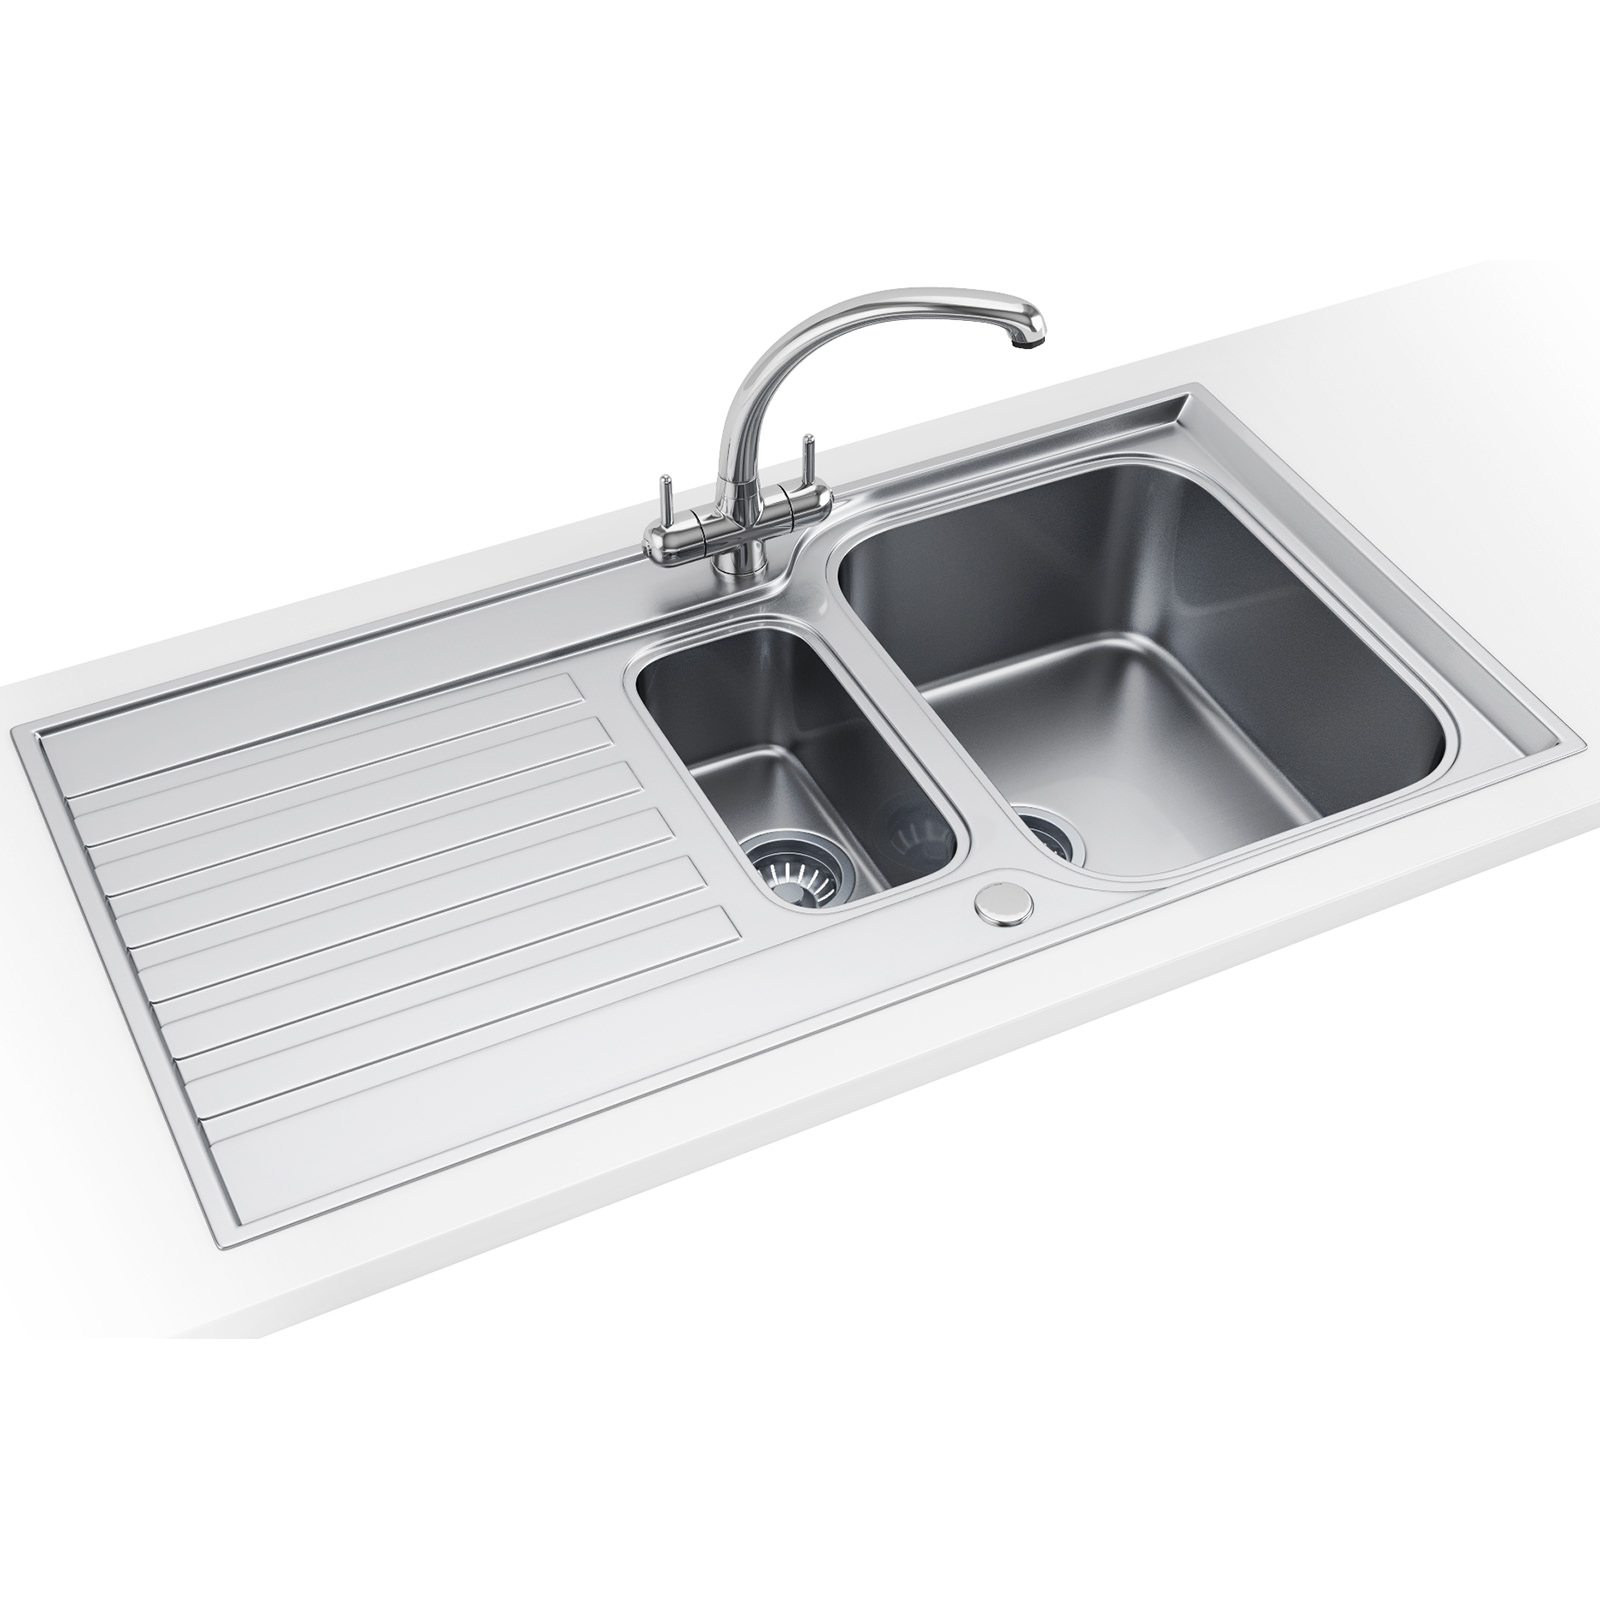 Franke Ascona Propack ASX 651 Stainless Steel Kitchen Sink And Tap ...